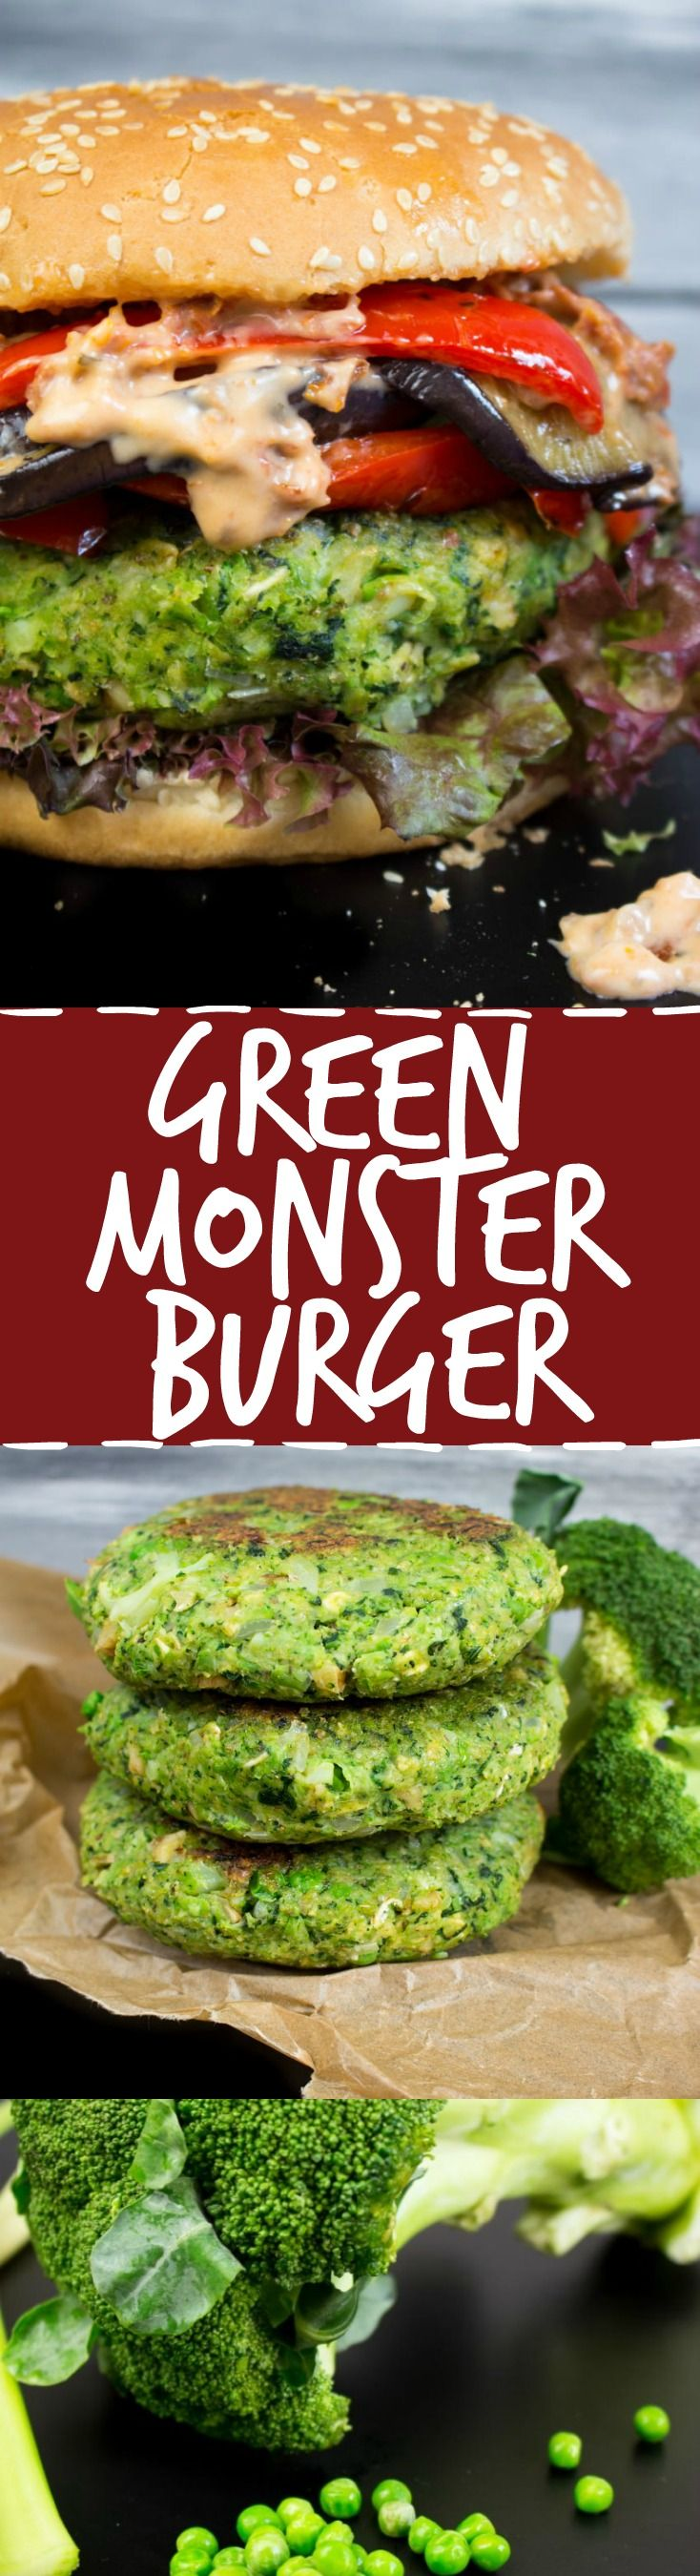 Green monster veggie burger with grilled eggplant, red bell pepper, and sun-dried tomato mayo. The green patty is made of kale, peas, broccoli, and celery. #vegan #burger #veggieburger #kale #kaleburger #vegetarian